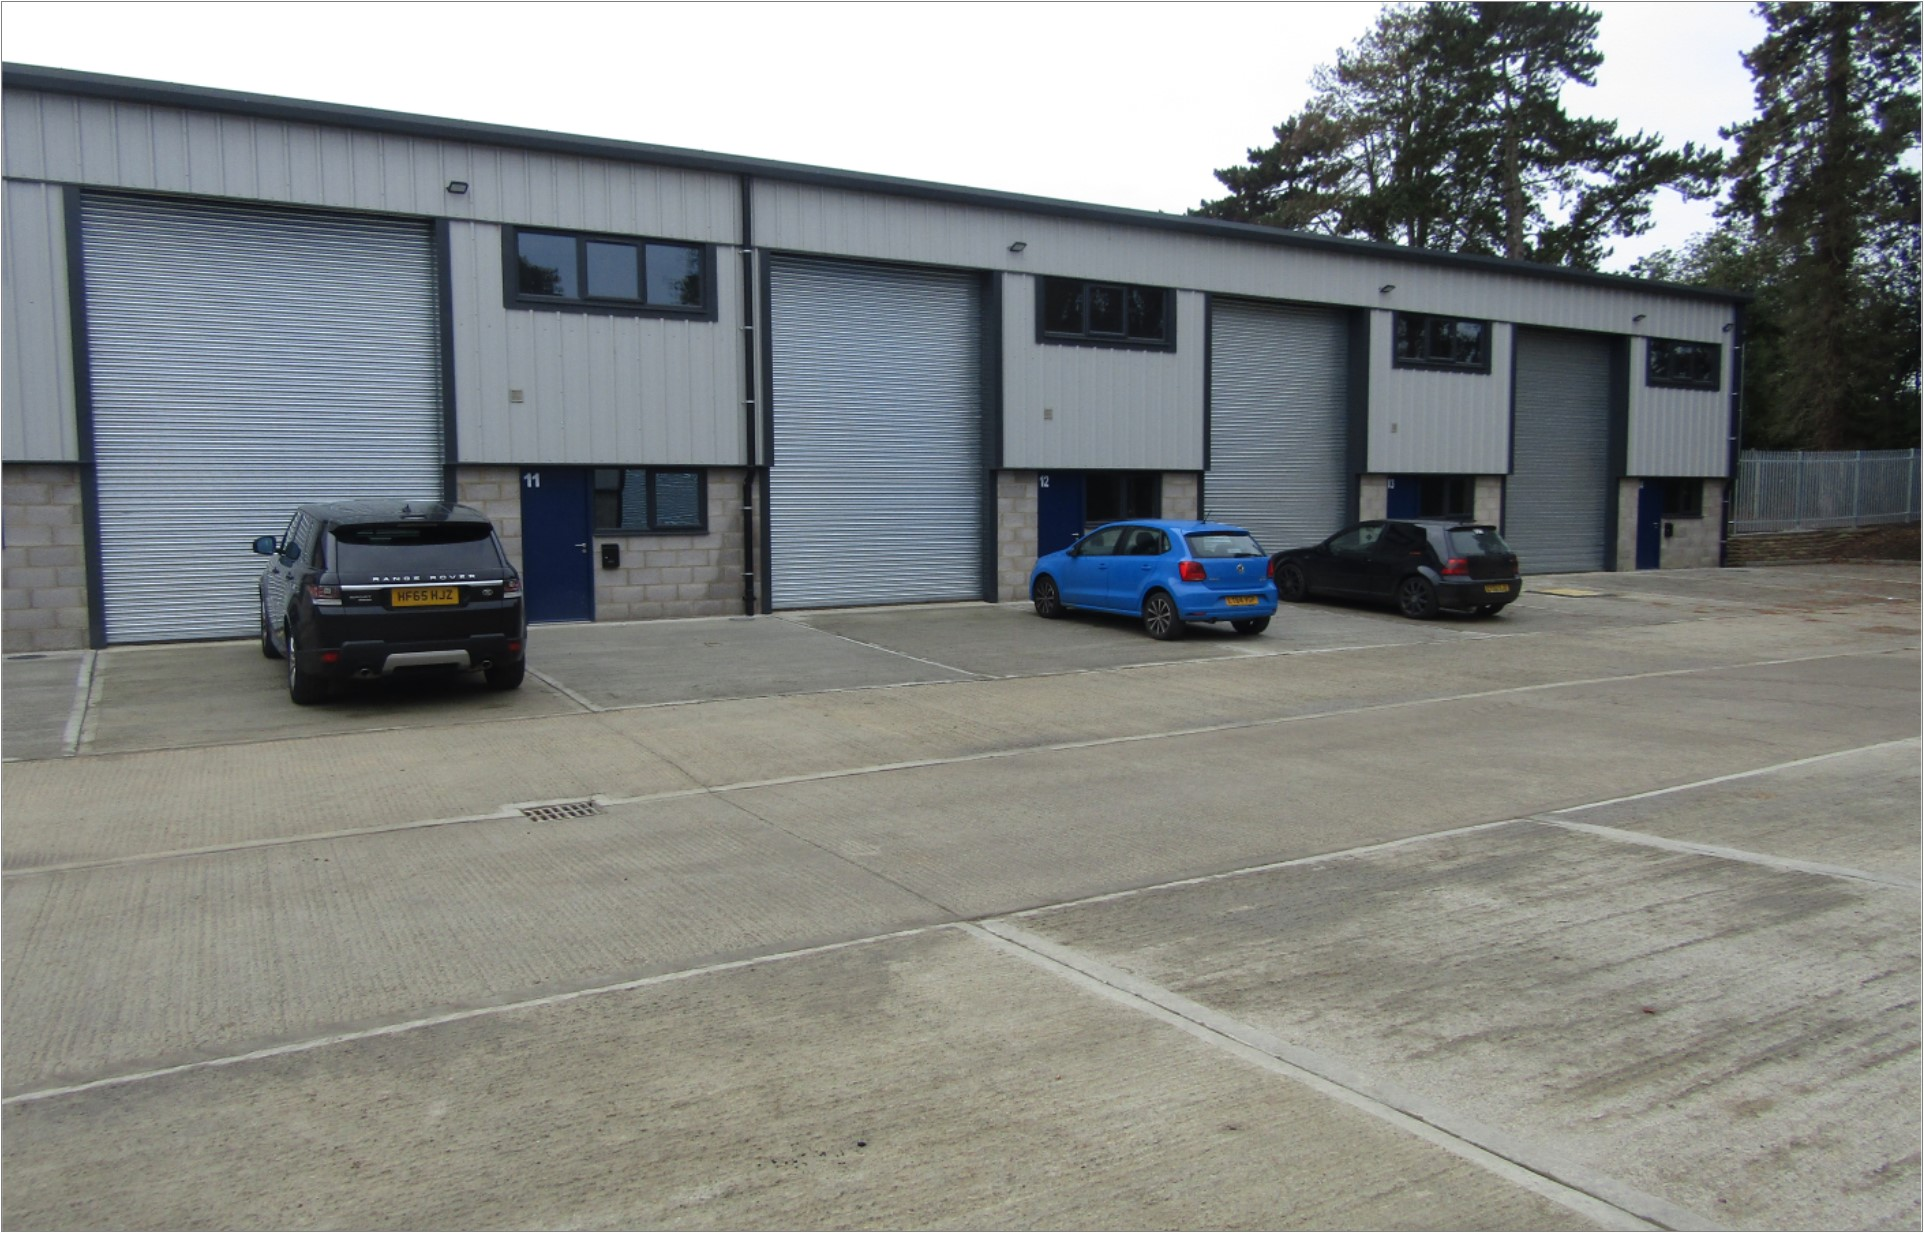 Units 11 & 12, The Firs, Watermill Industrial Estate, Aspenden Road, Buntingford